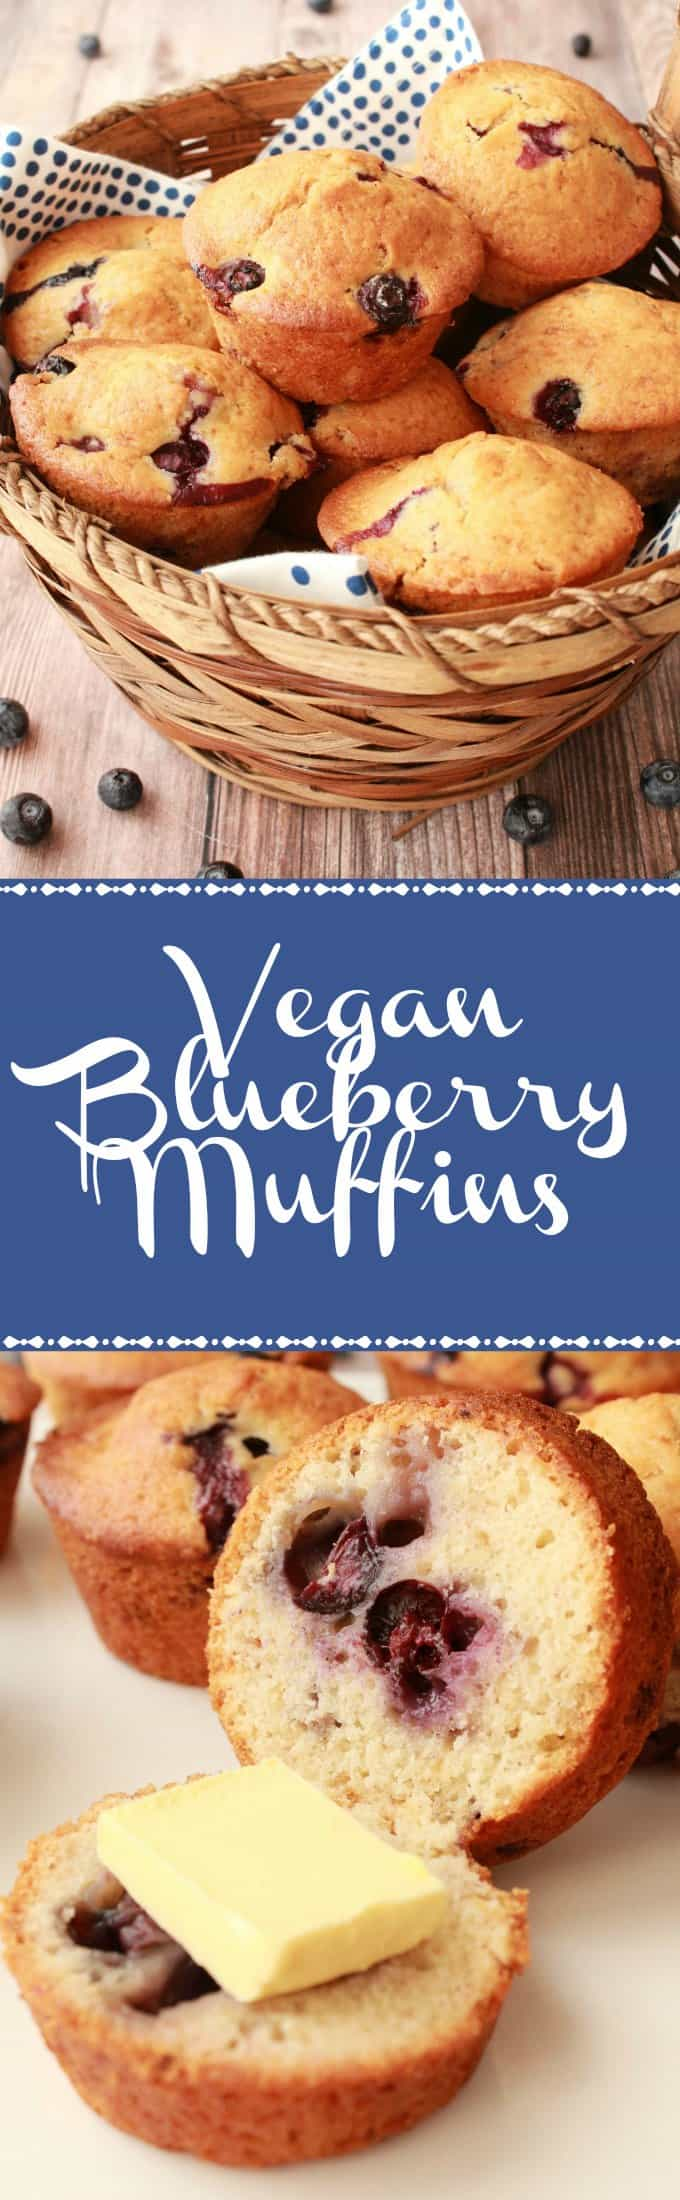 Easy and delicious vegan blueberry muffins. These moist and perfectly sweet muffins are packed with blueberries and simply divine spread with vegan butter. Vegan | Vegan Breakfast | Vegan Dessert | Vegan Muffins | Vegan Food | Dairy-Free | lovingitvegan.com